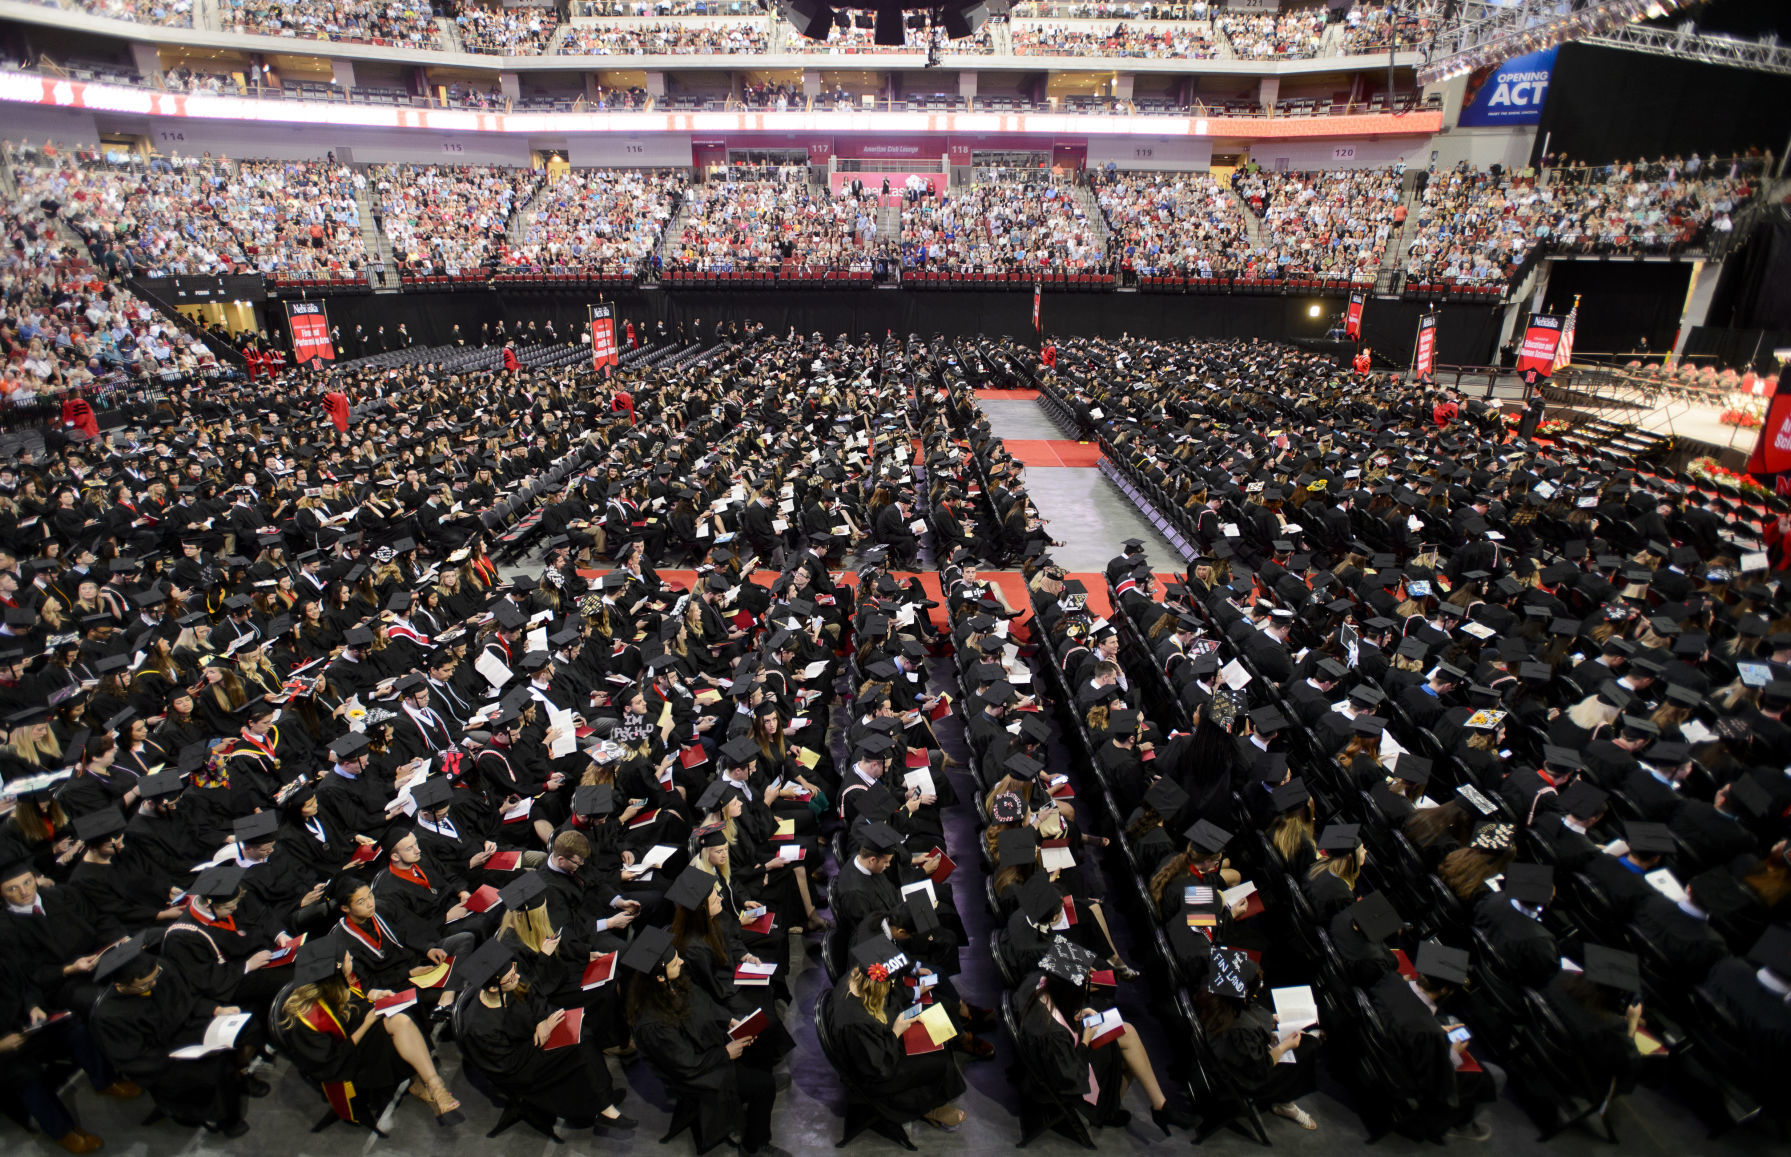 Airbnb predicts record stays for UNL graduation | Journal Star